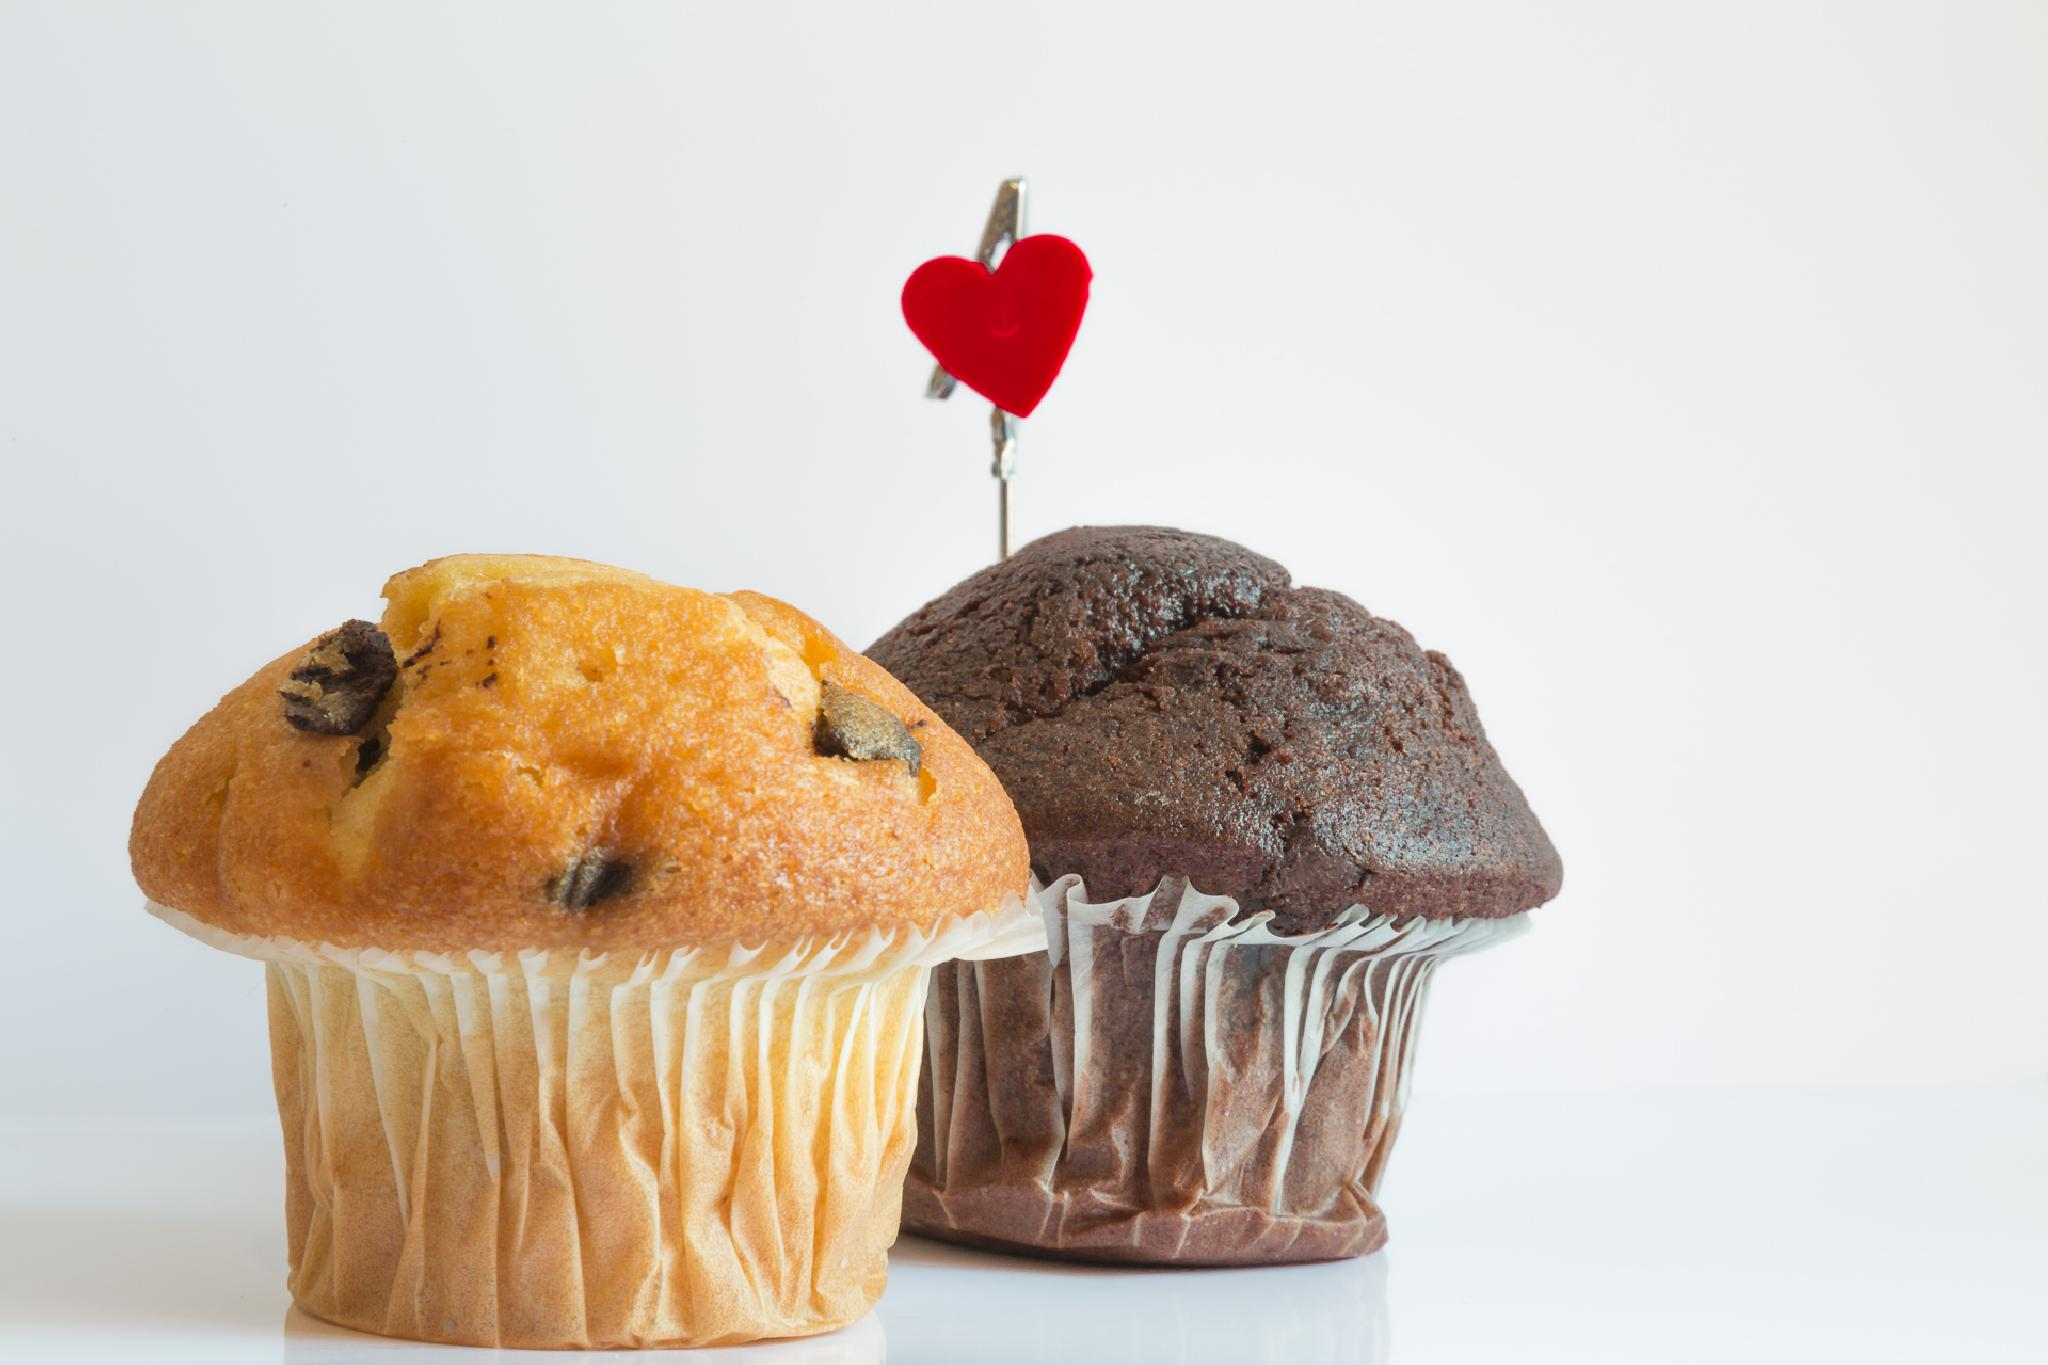 Muffin NO-RACISM by Gae8